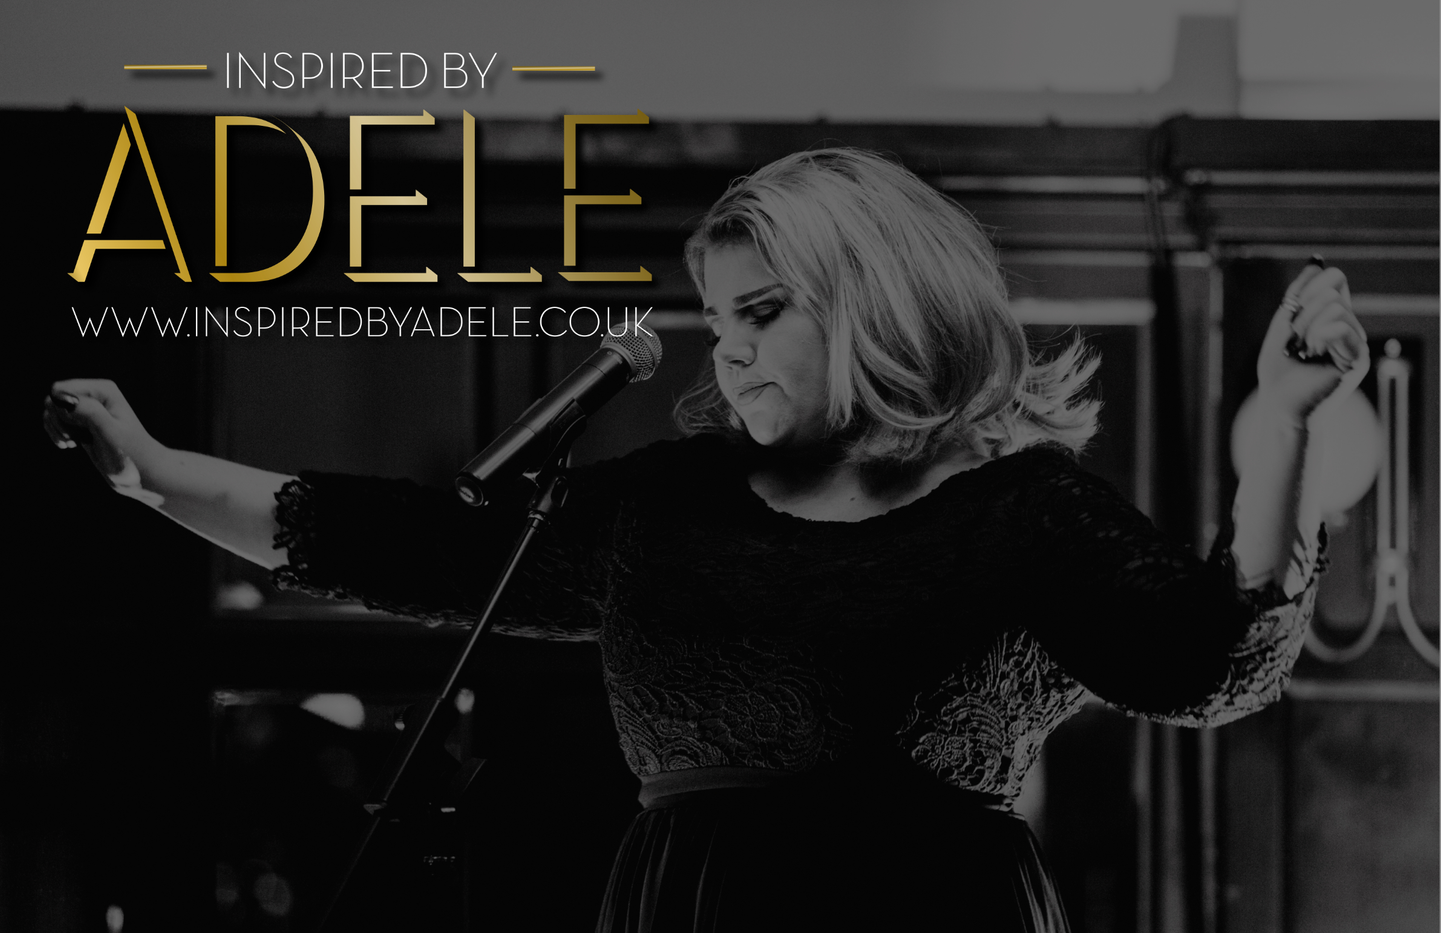 Adele Tribute, Inspired by Adele, Adele impersonate